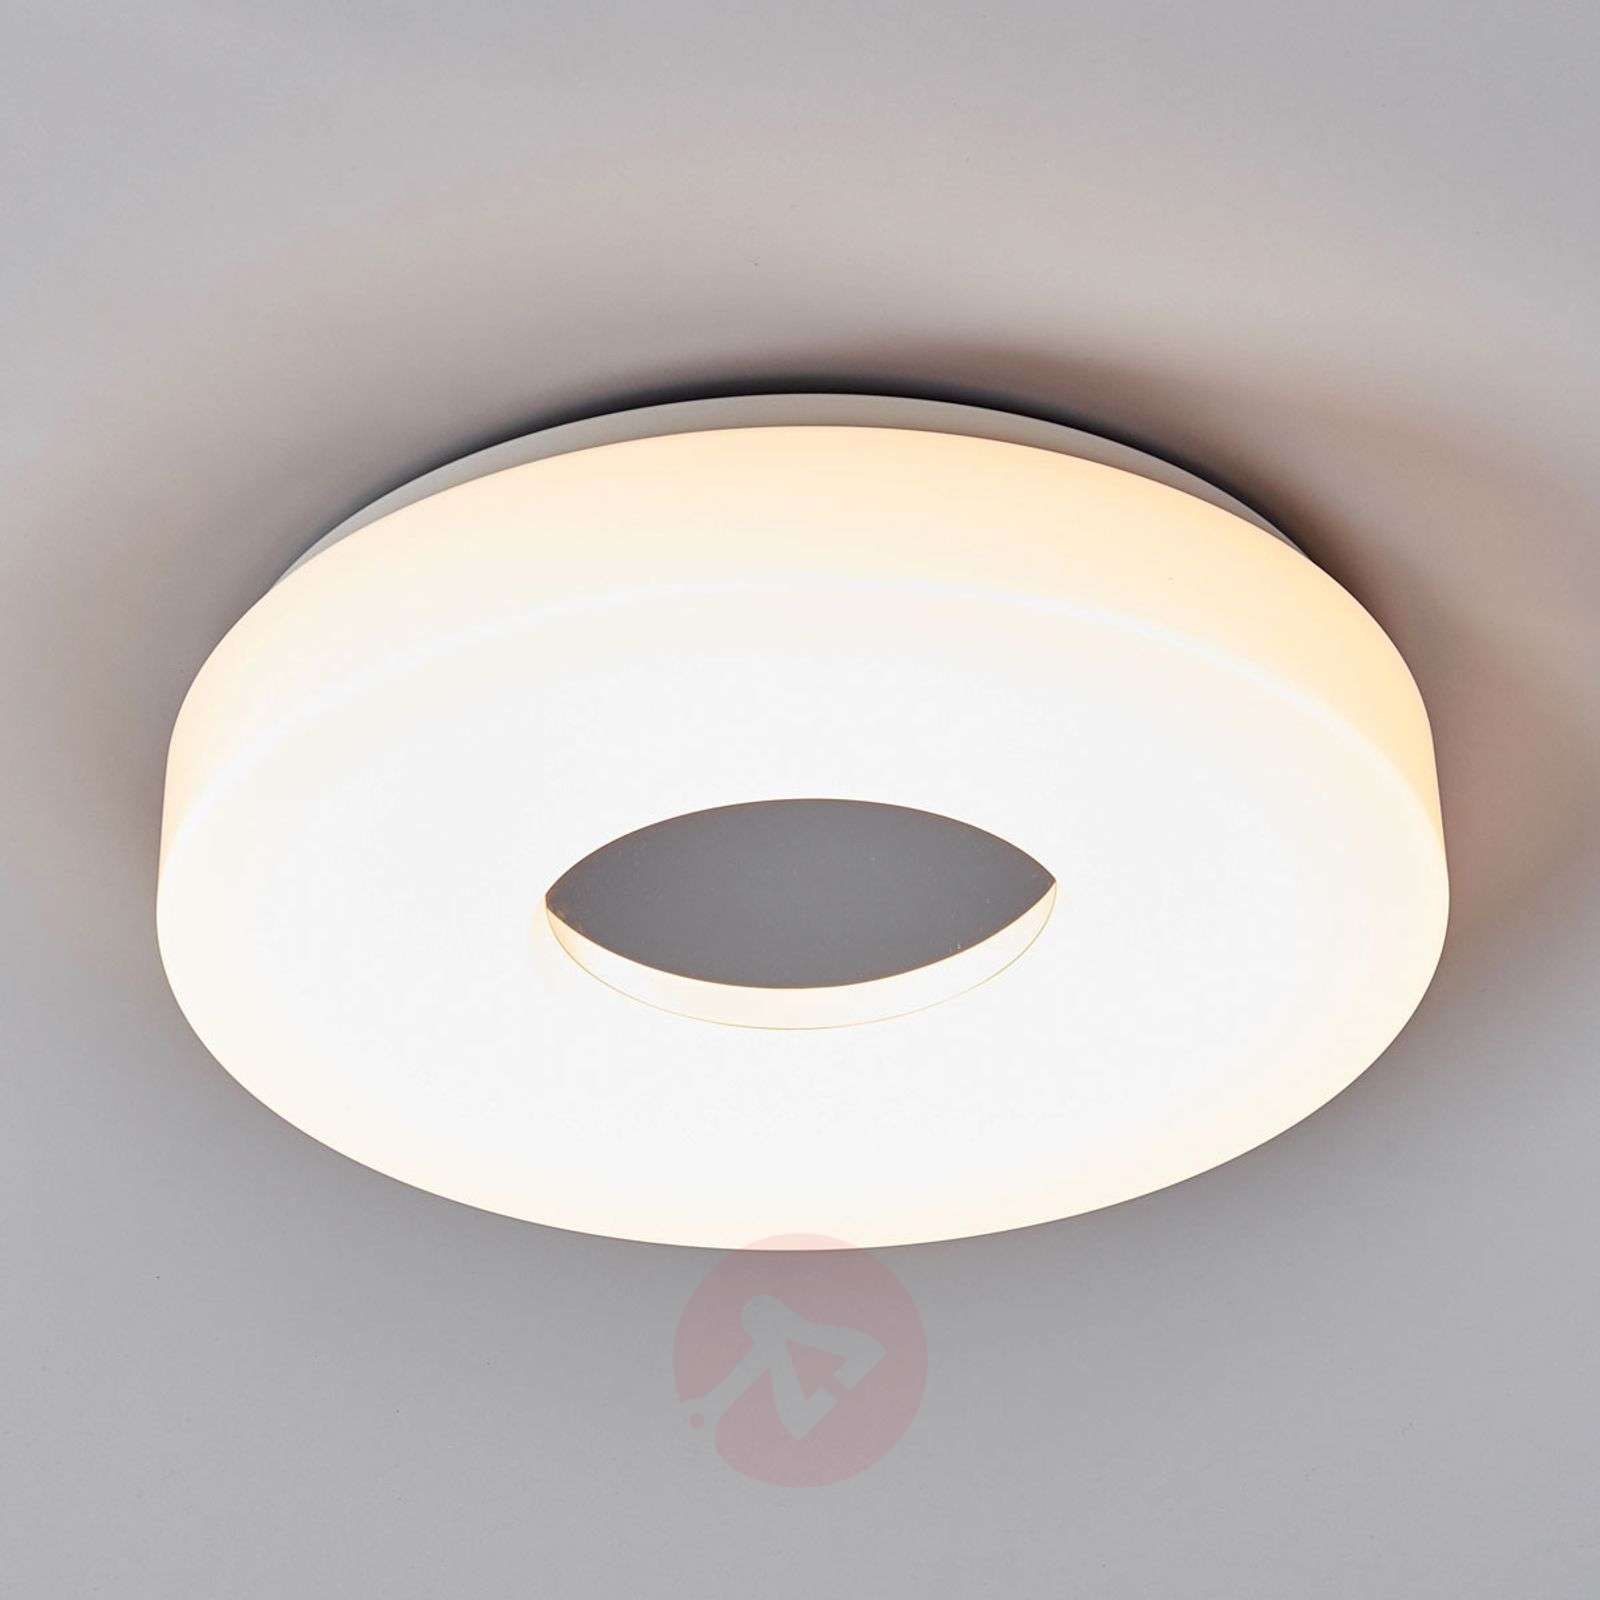 Modern Cuneo Bathroom Ceiling Light With Led 3006264 01